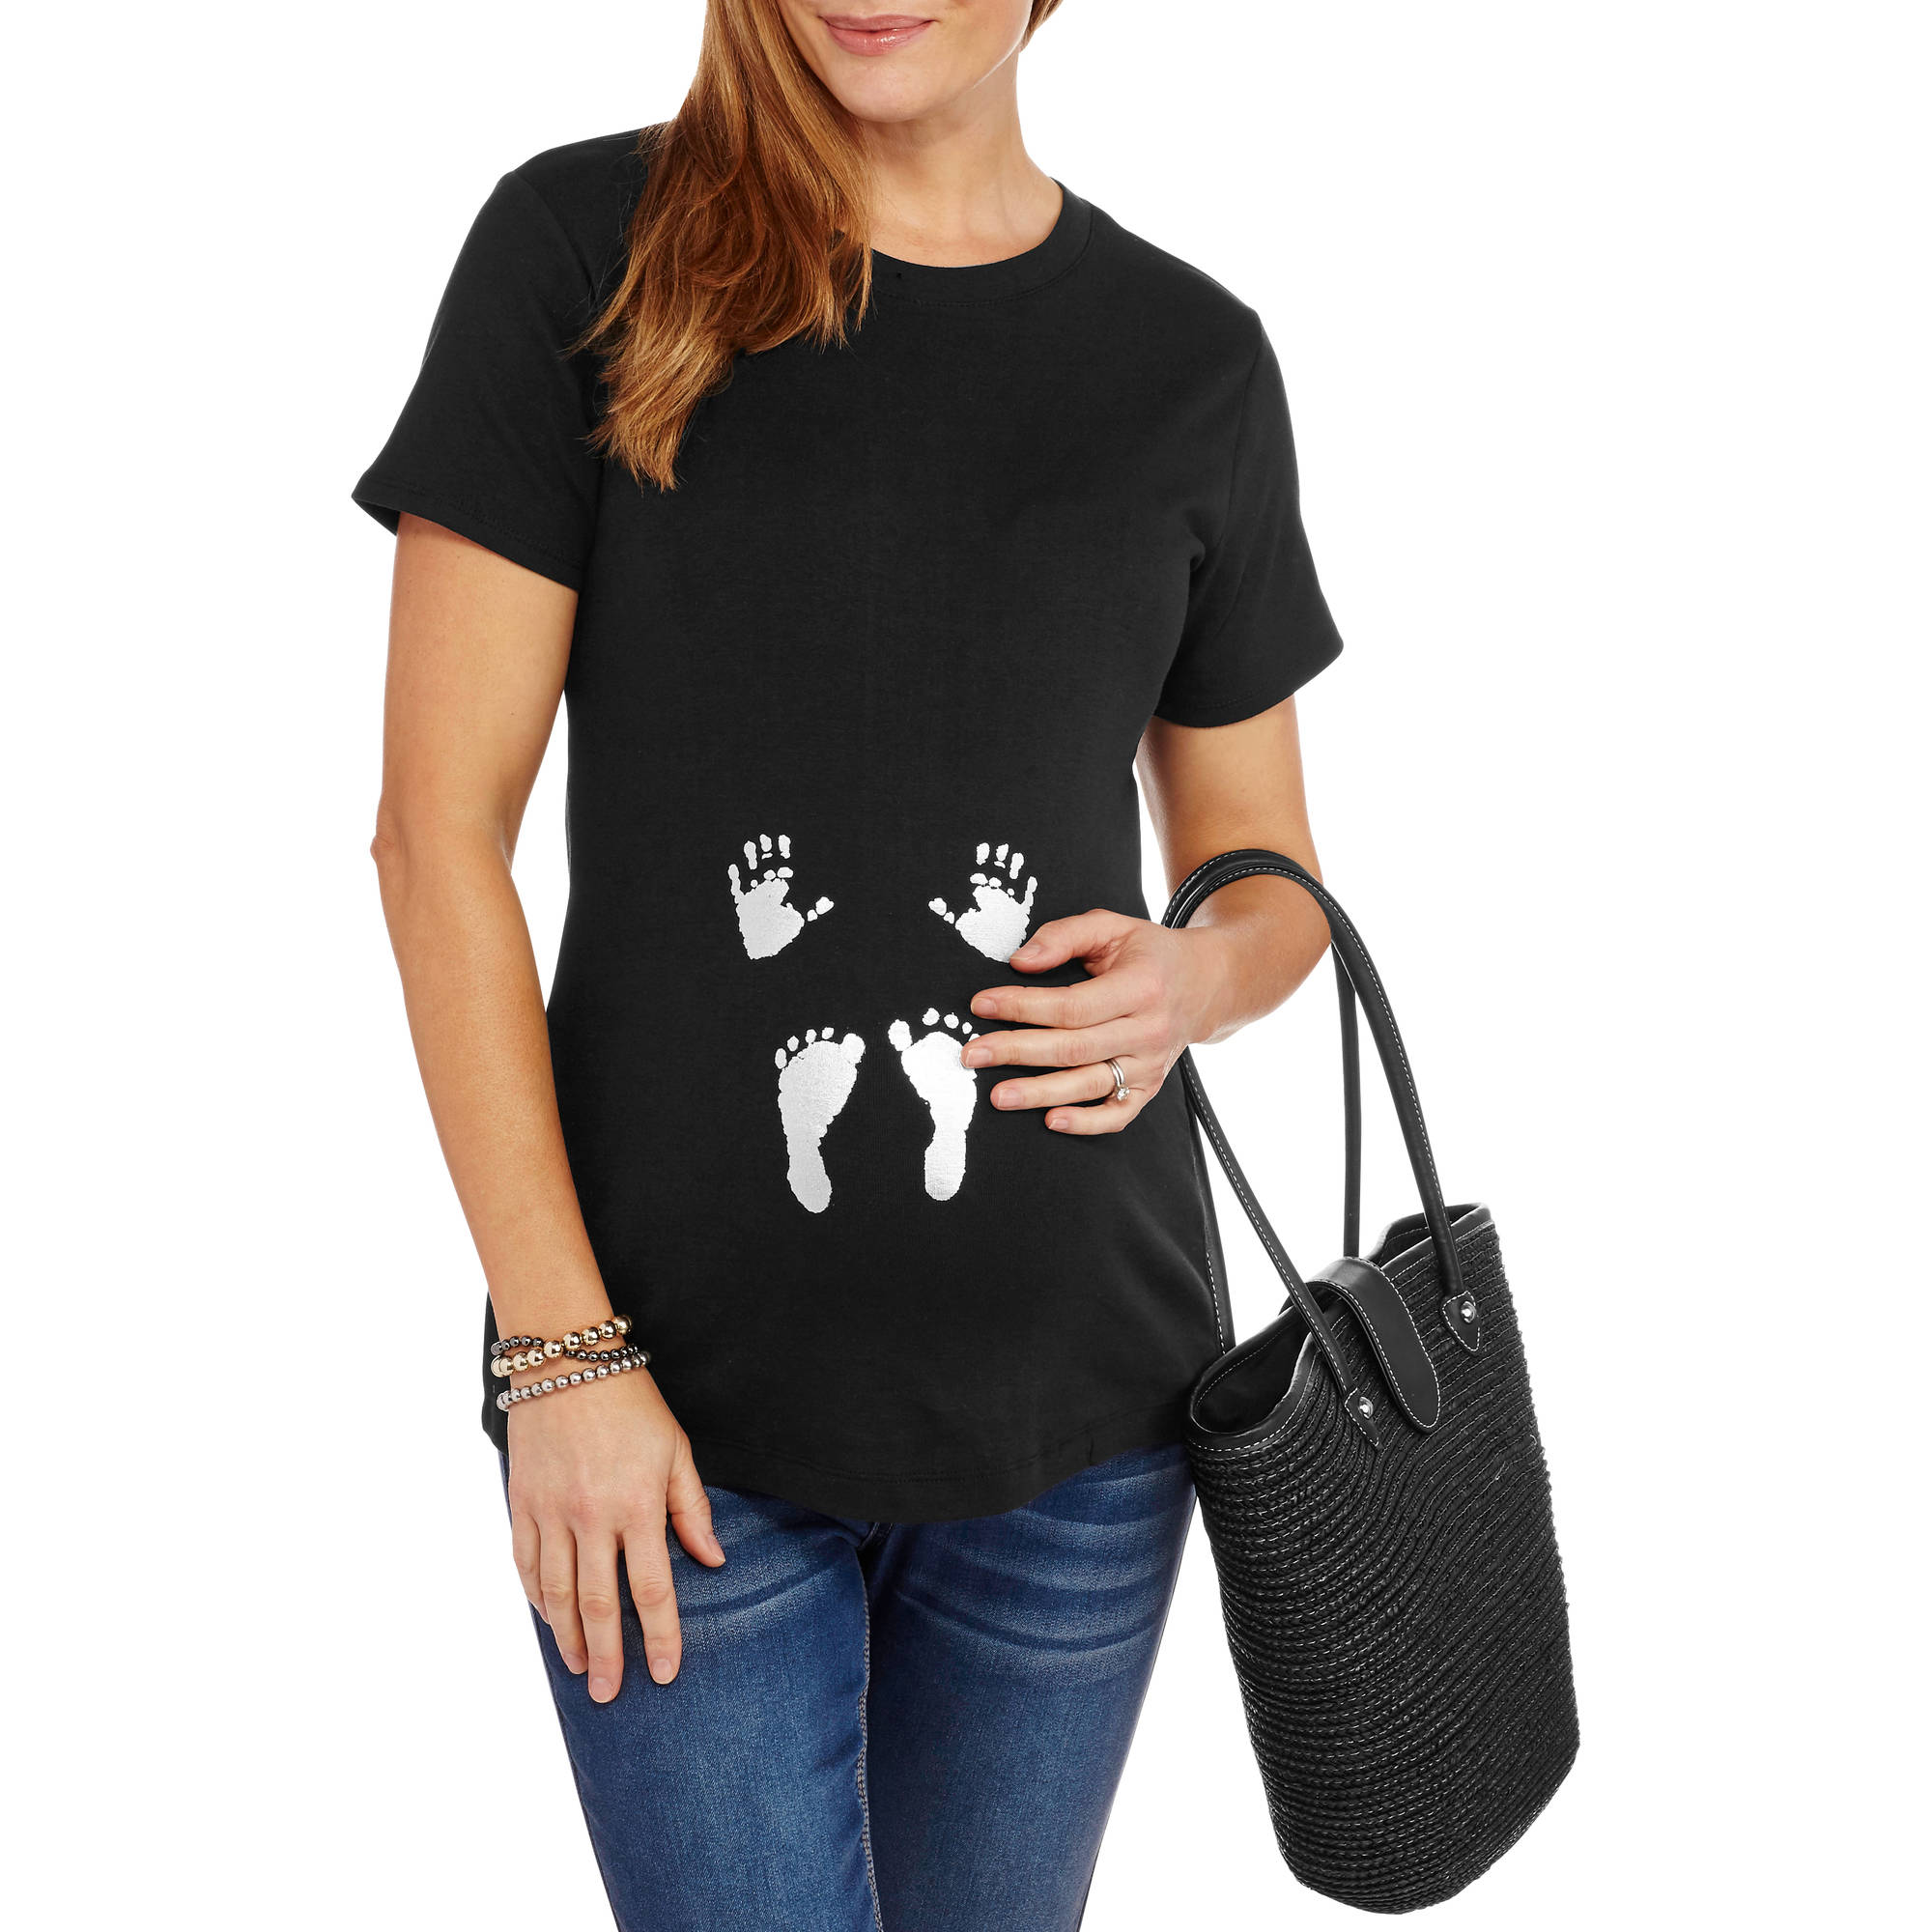 Maternity Hands and Feet Graphic Tee